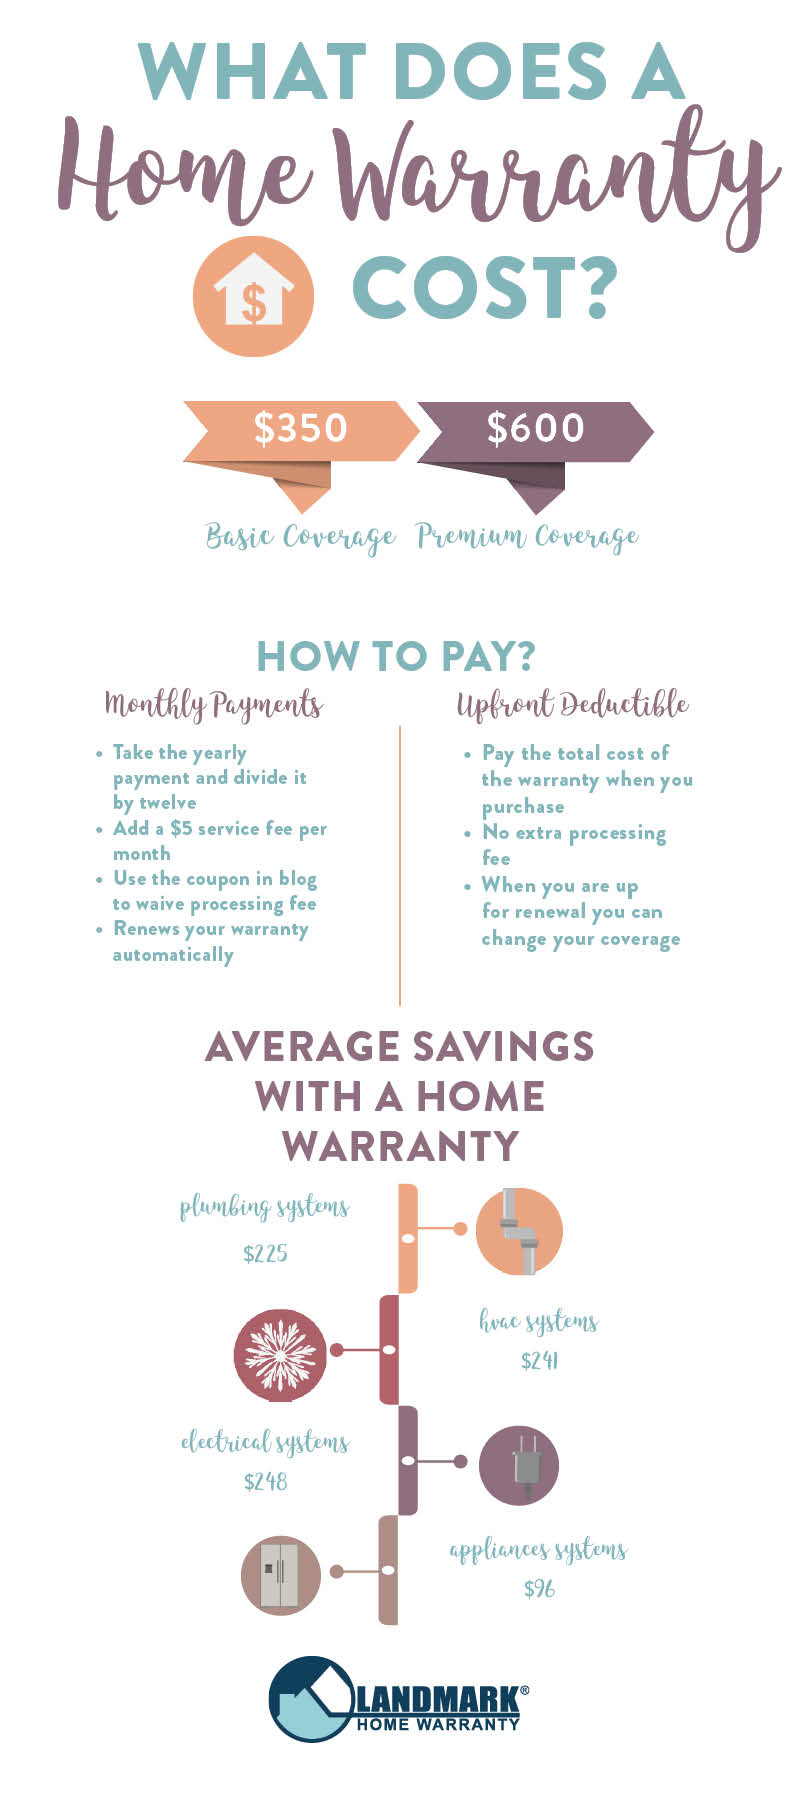 infographic explaining what a home warranty costs, how to pay for a home warranty and what the average savings are for a home warranty